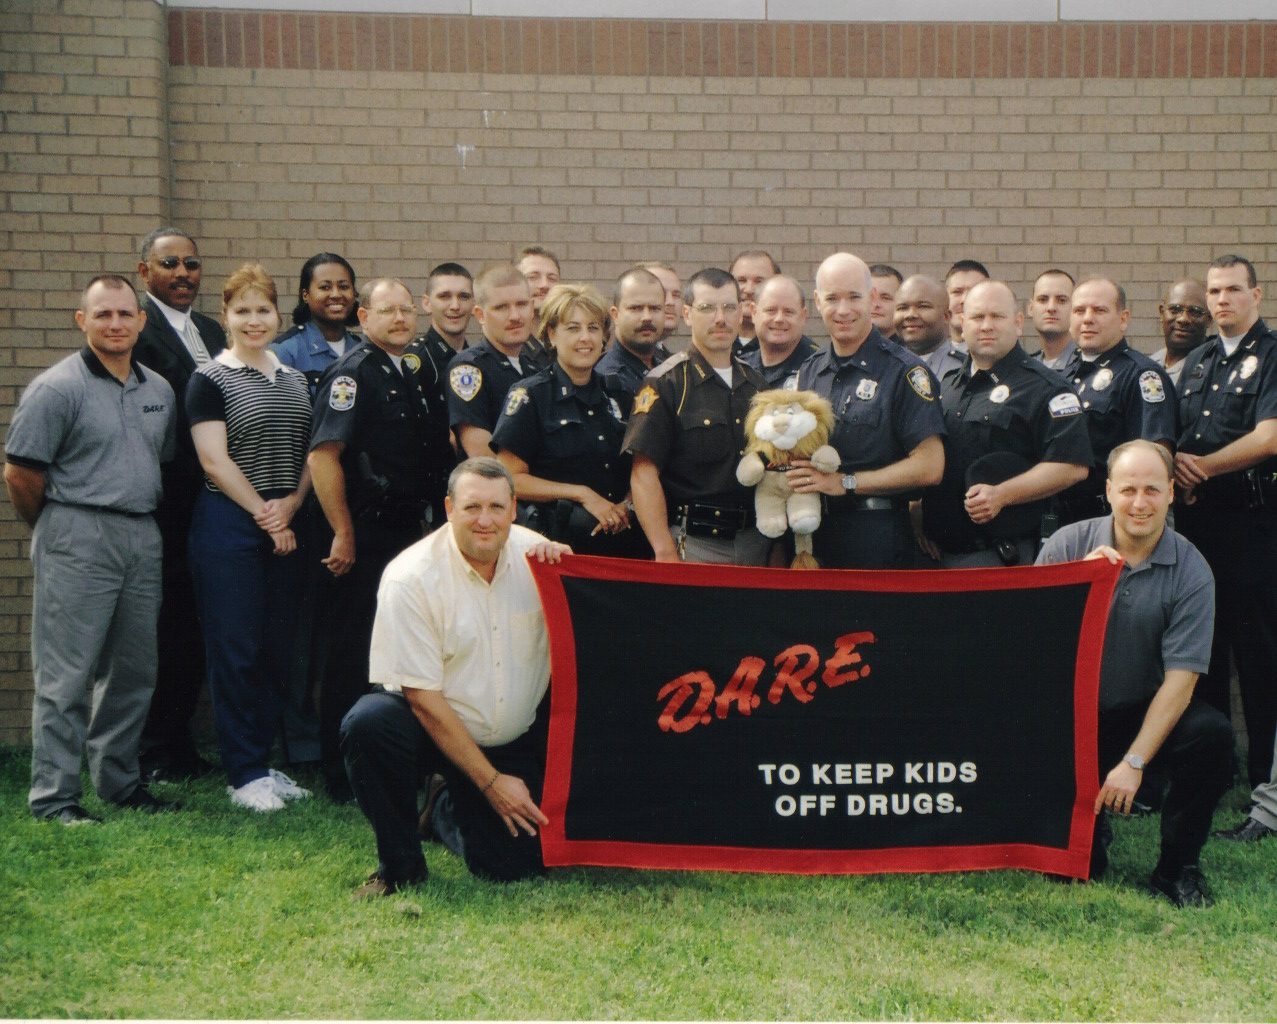 DARE Officer Training # 47